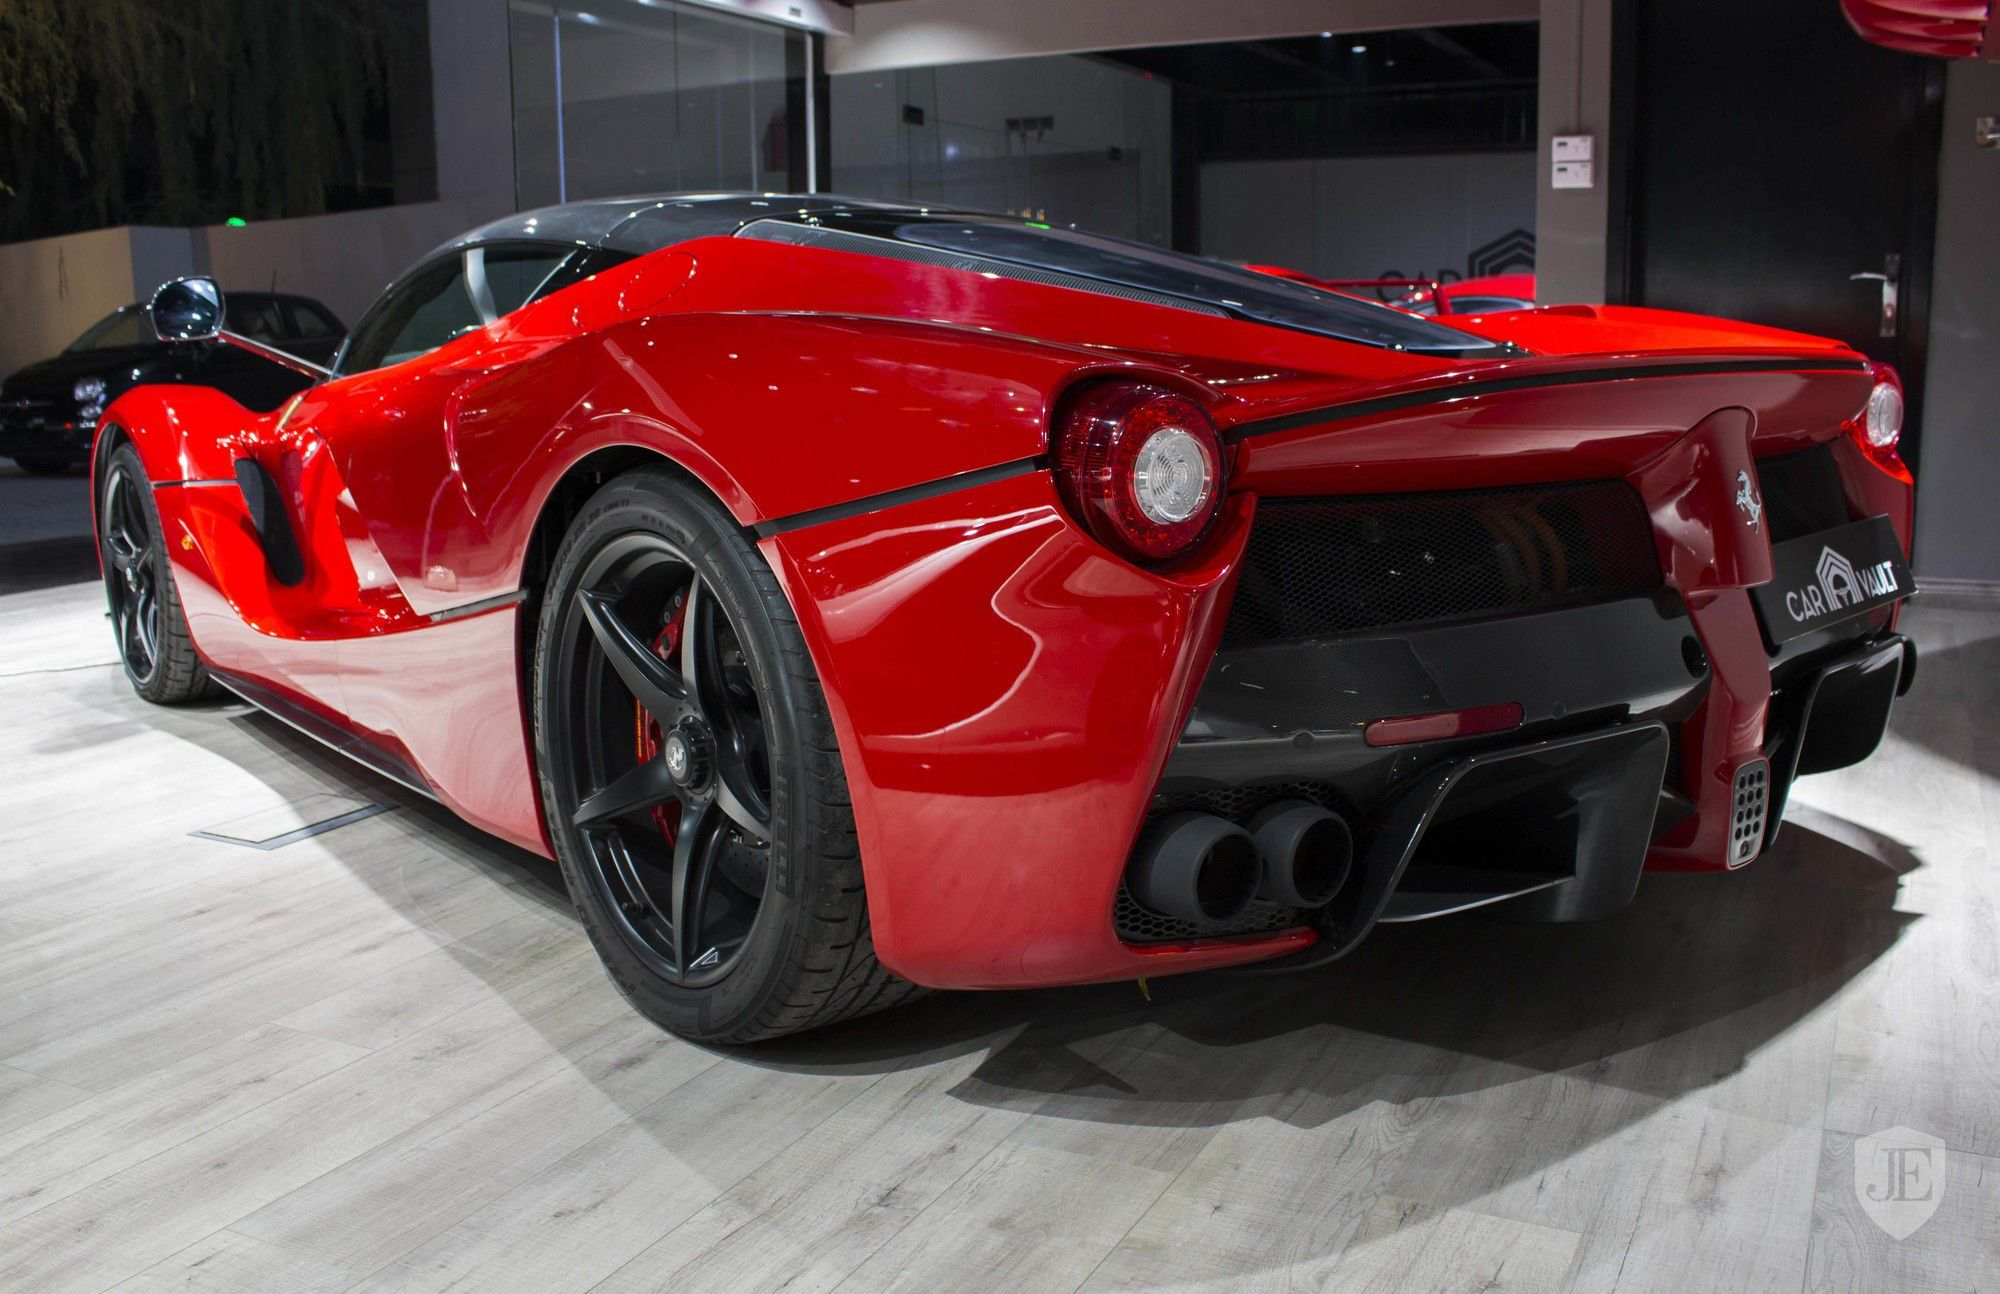 2015 Ferrari Laferrari In Dubai United Arab Emirates For Sale On Jamesedition Ferrari Laferrari Ferrari Luxury Cars